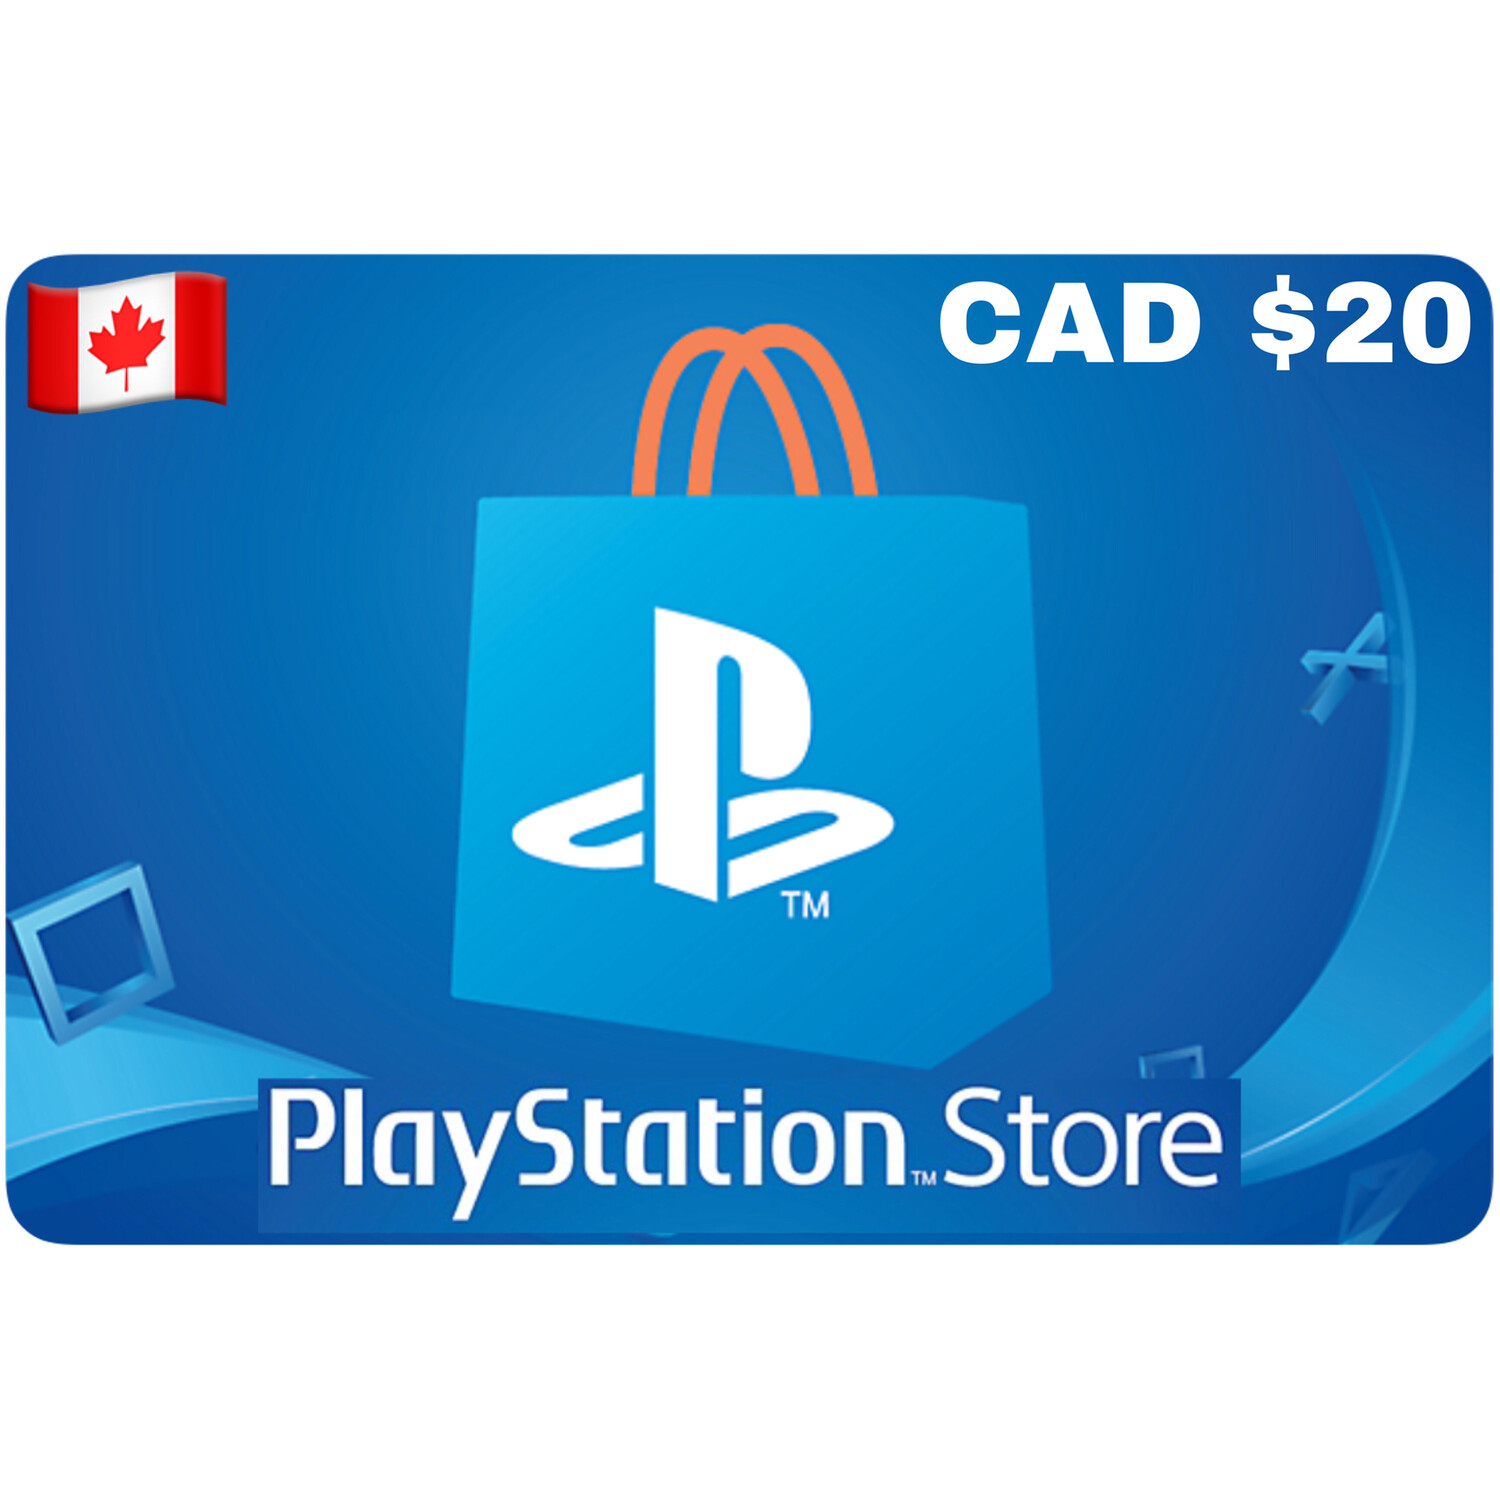 Playstation Store Gift Card Canada $20